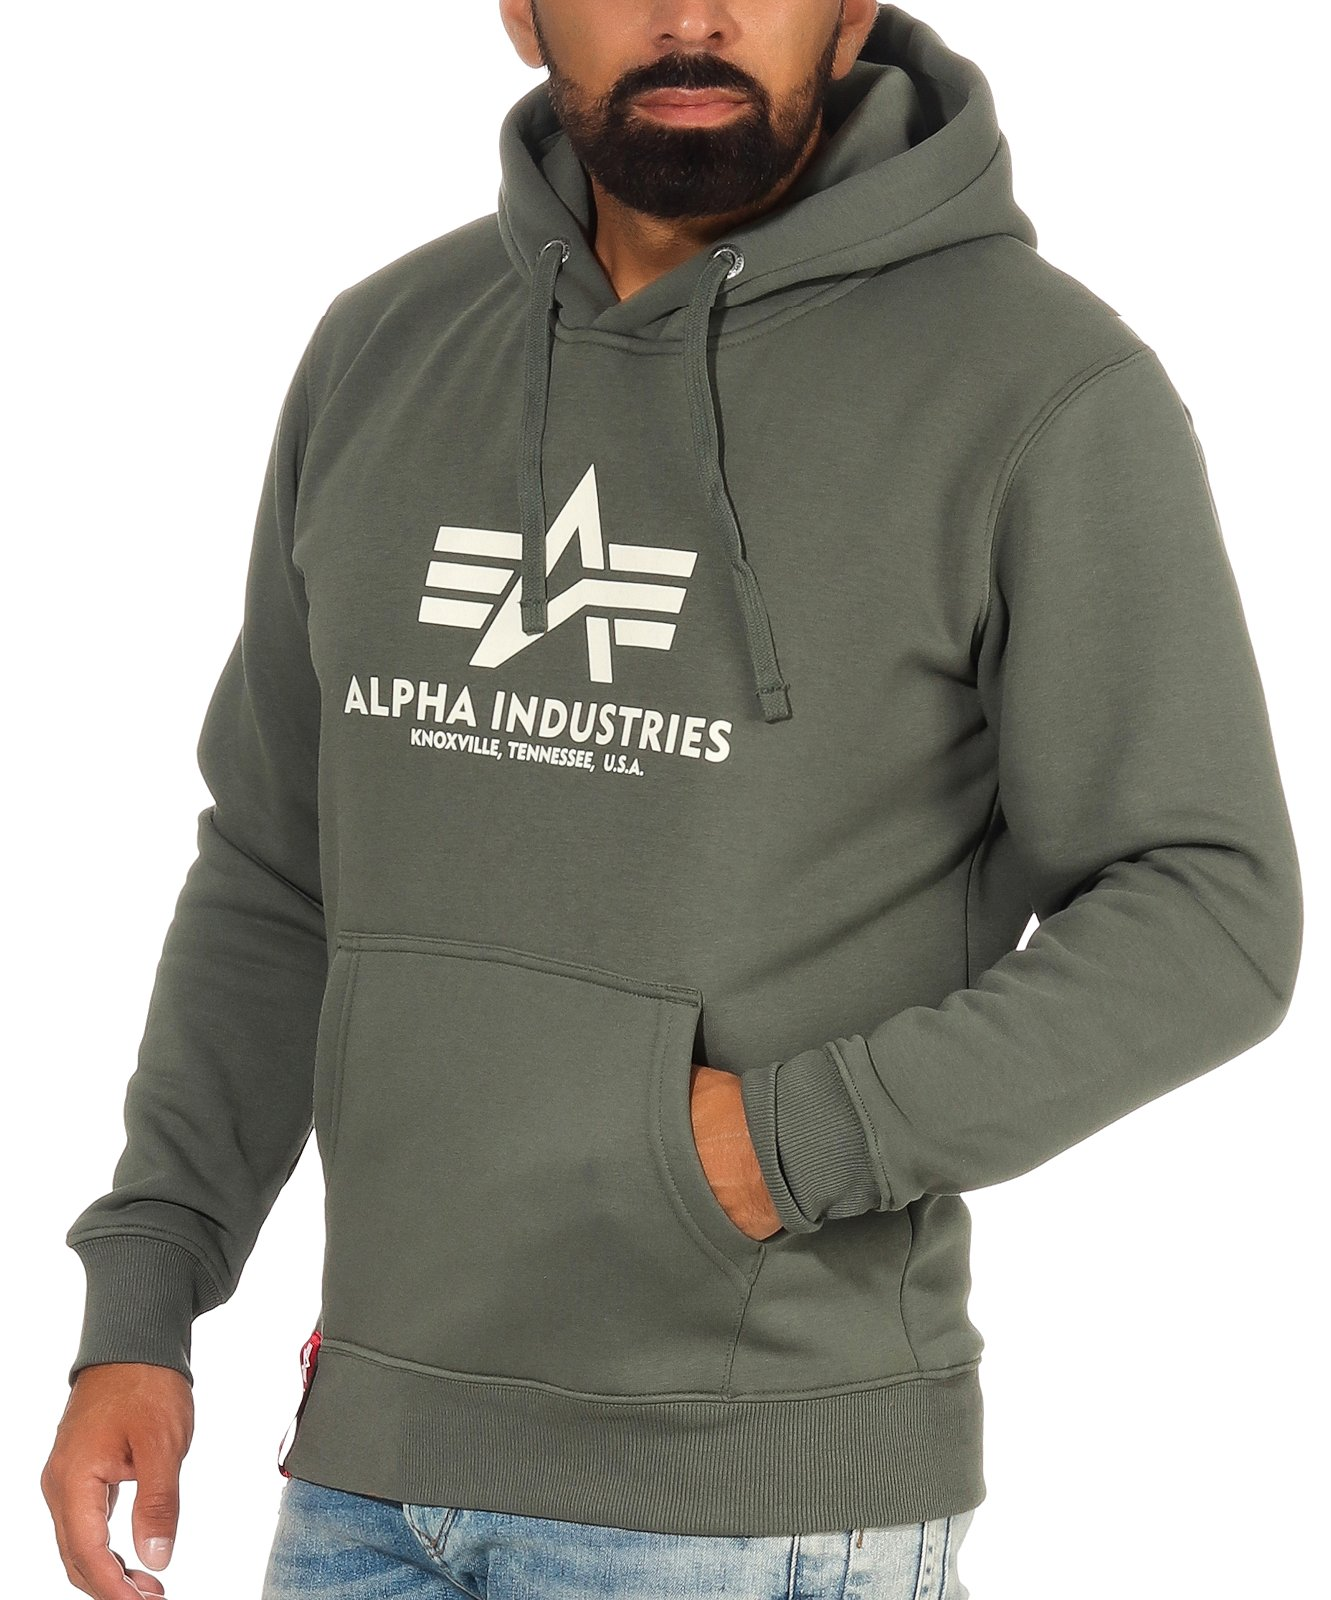 About Industries Details Alpha Basic Sweatshirt Jumper Hoody Mens Hoodie Sports Show Title Original 178312 rhdxQCts